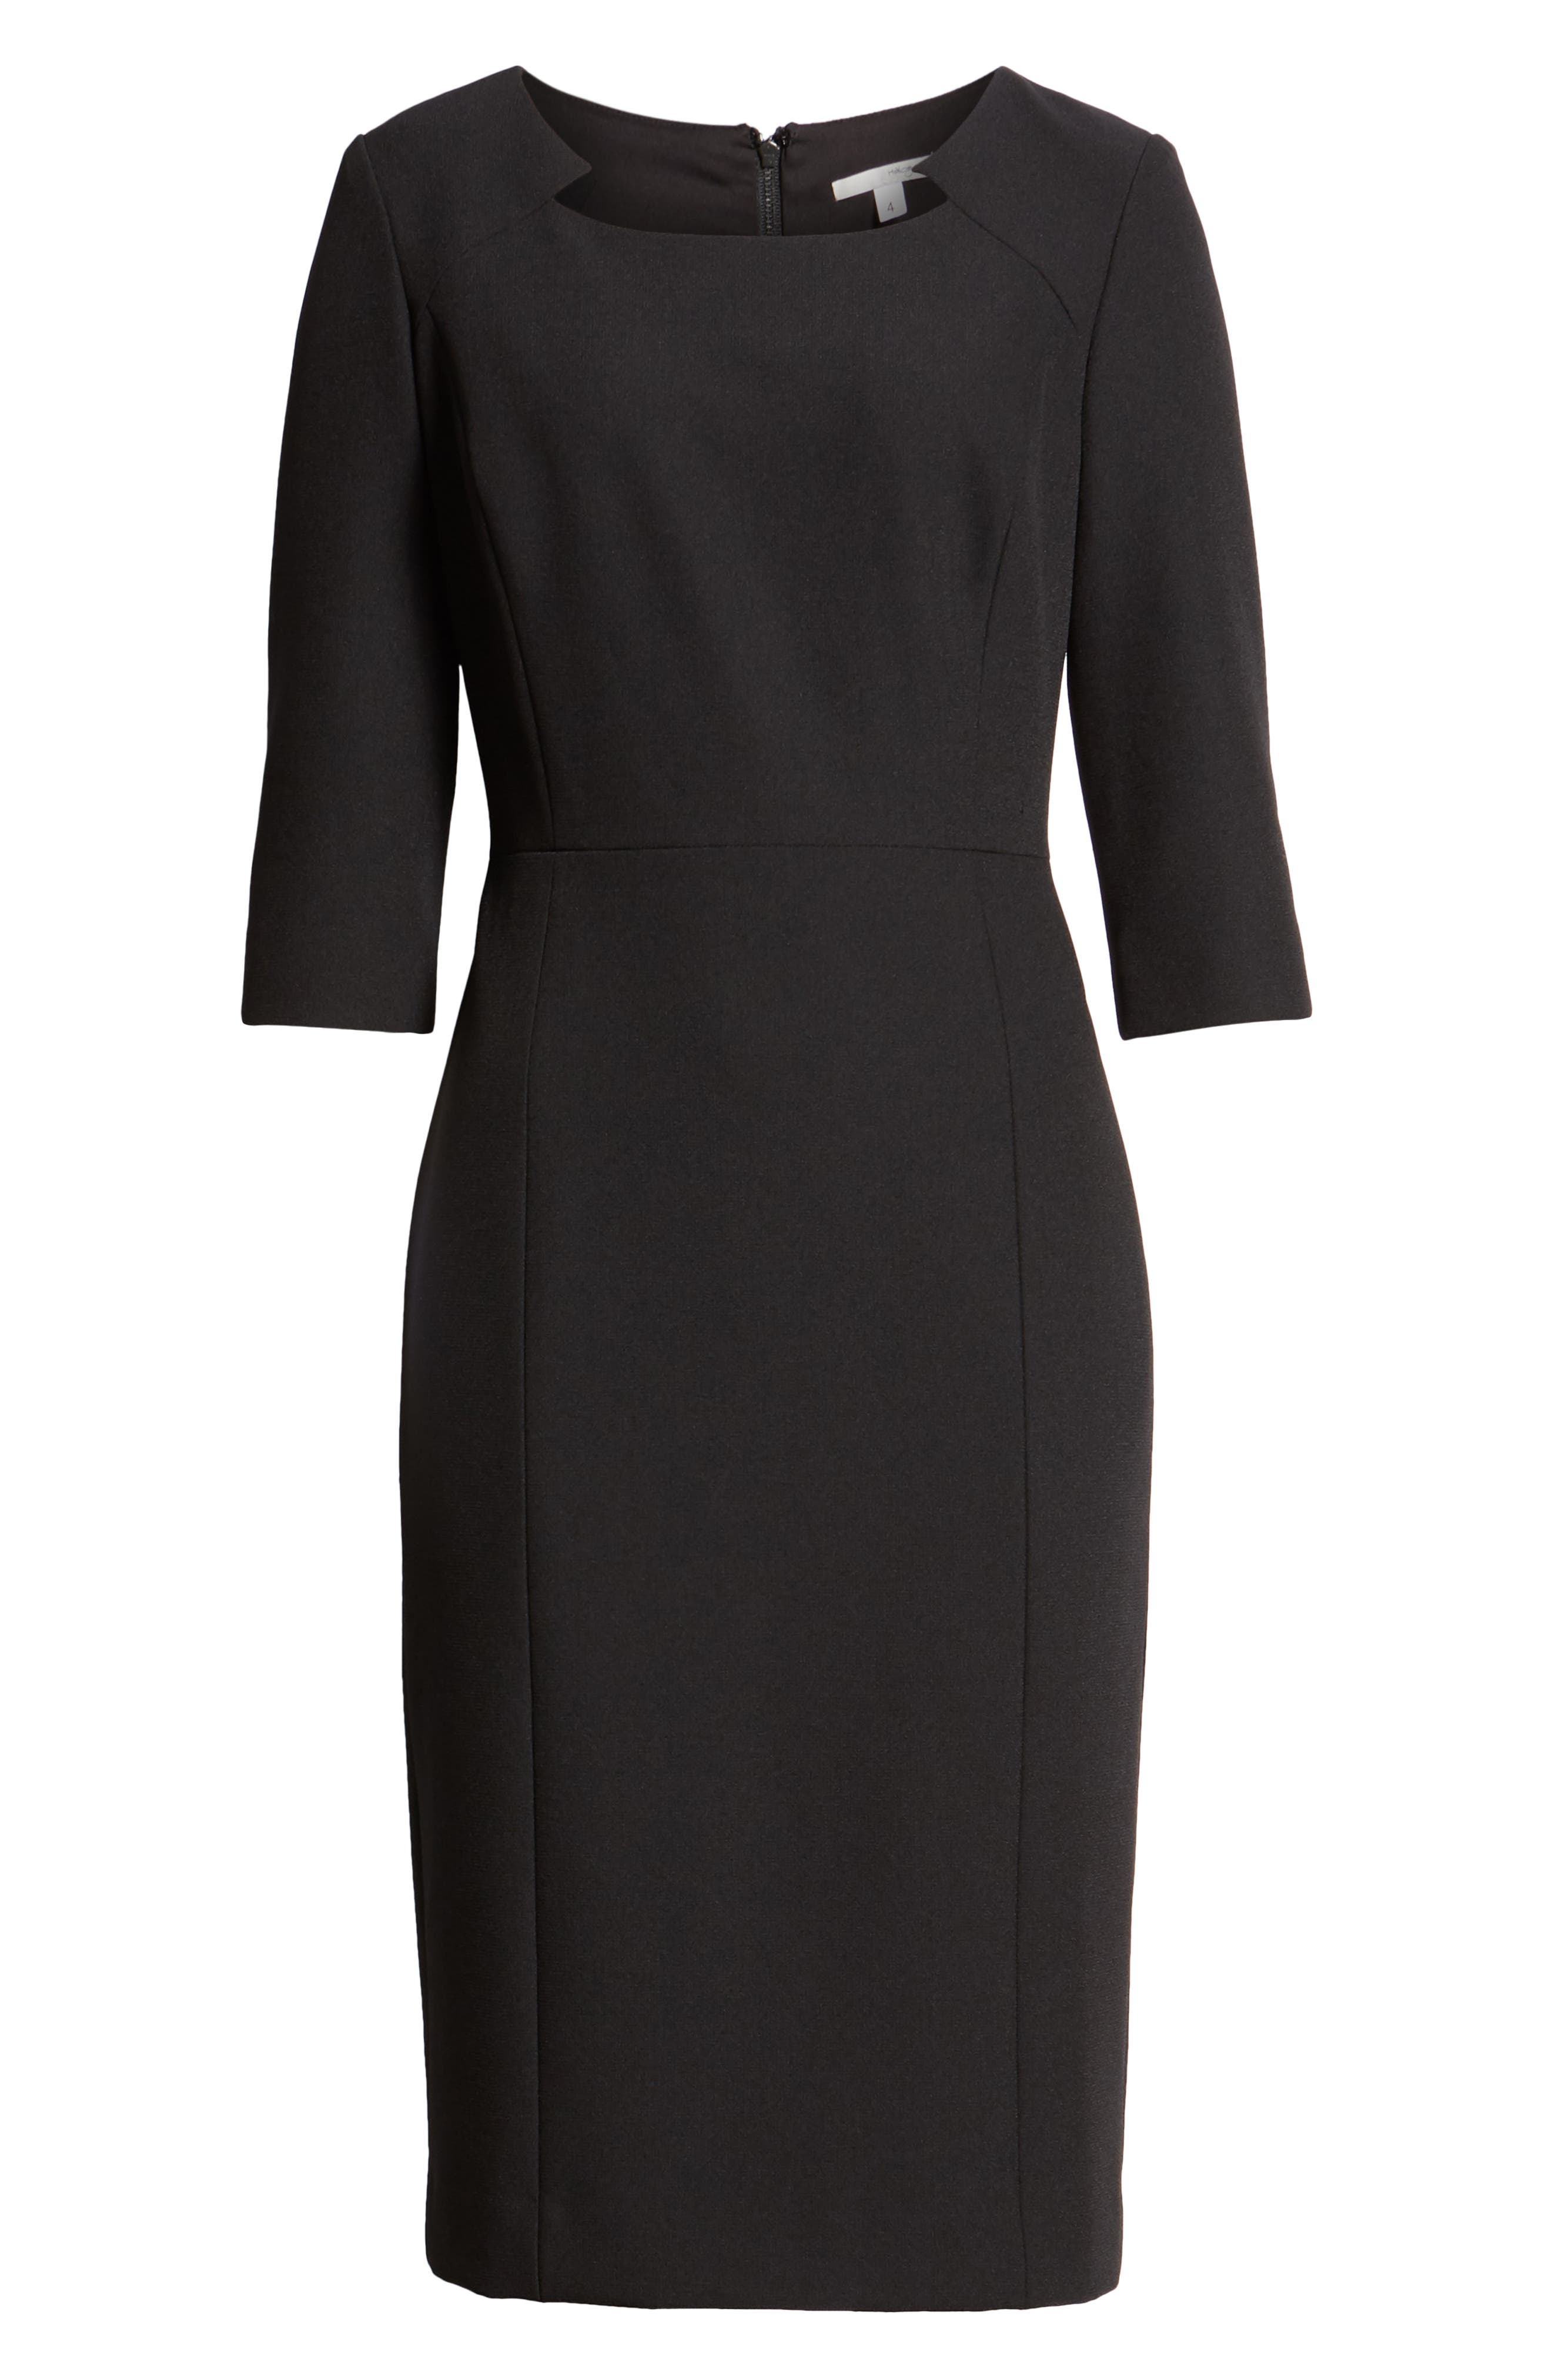 HALOGEN<SUP>®</SUP>,                             Textured Stretch Sheath Dress,                             Alternate thumbnail 7, color,                             001